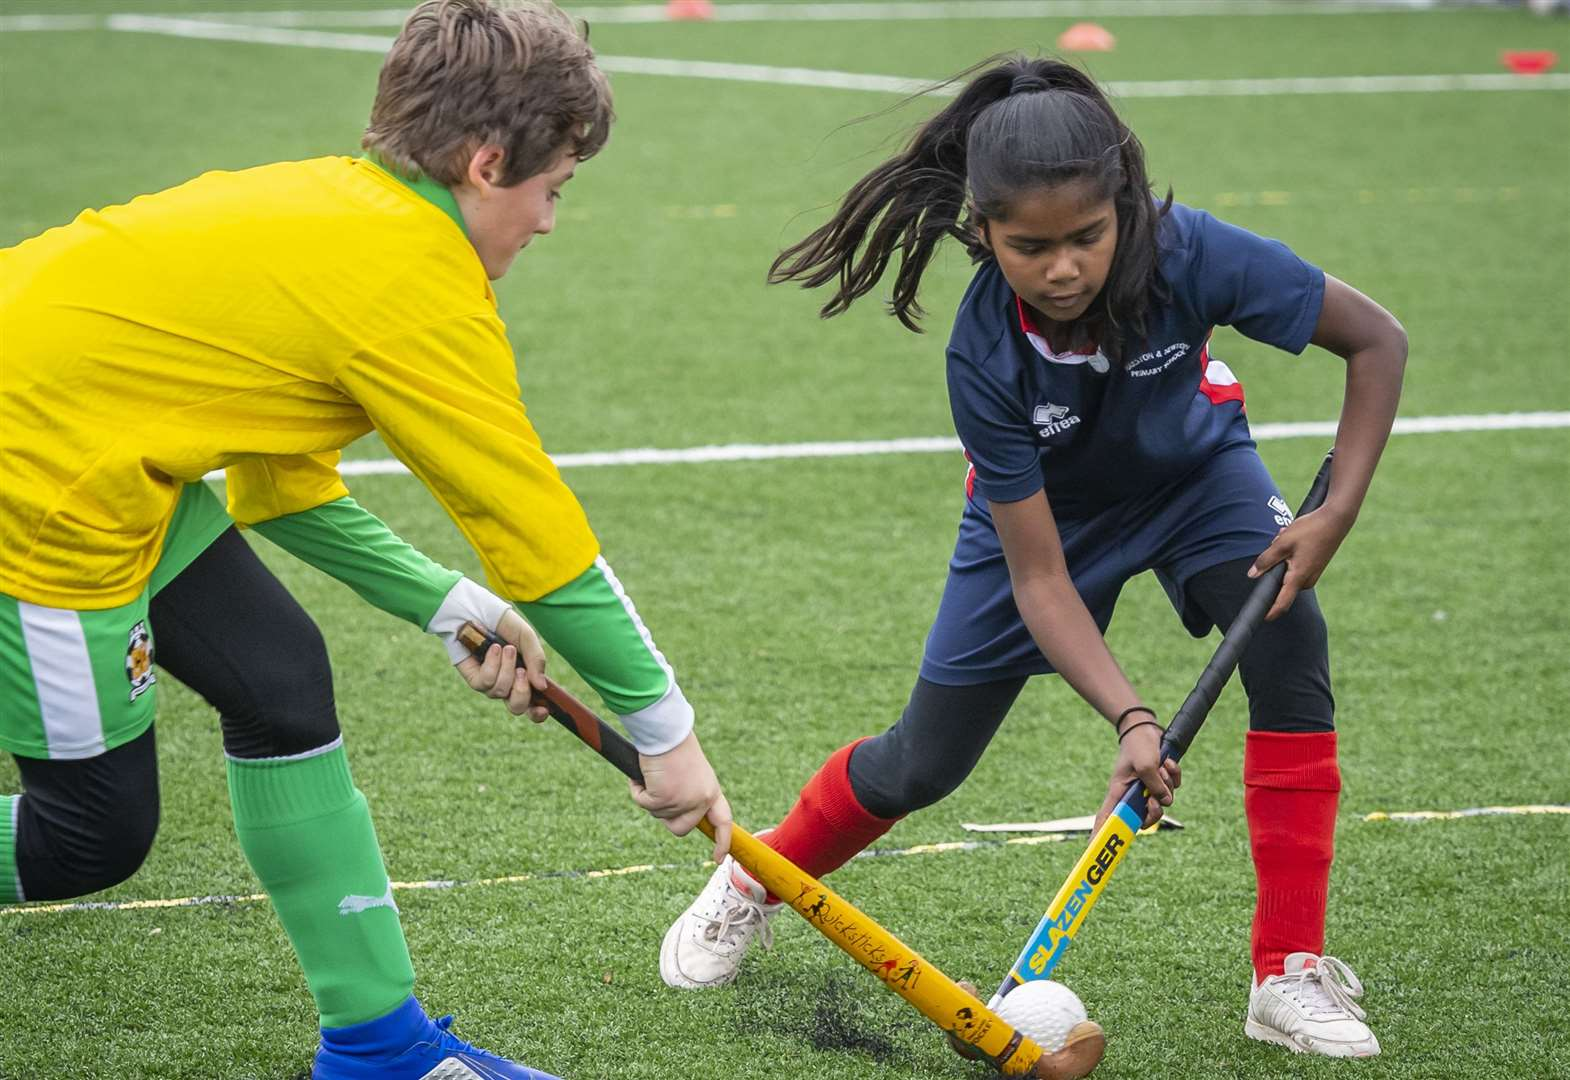 Record-breaking entry at South Cambs School Sports Partnership Year 5/6 Quicksticks Hockey competition